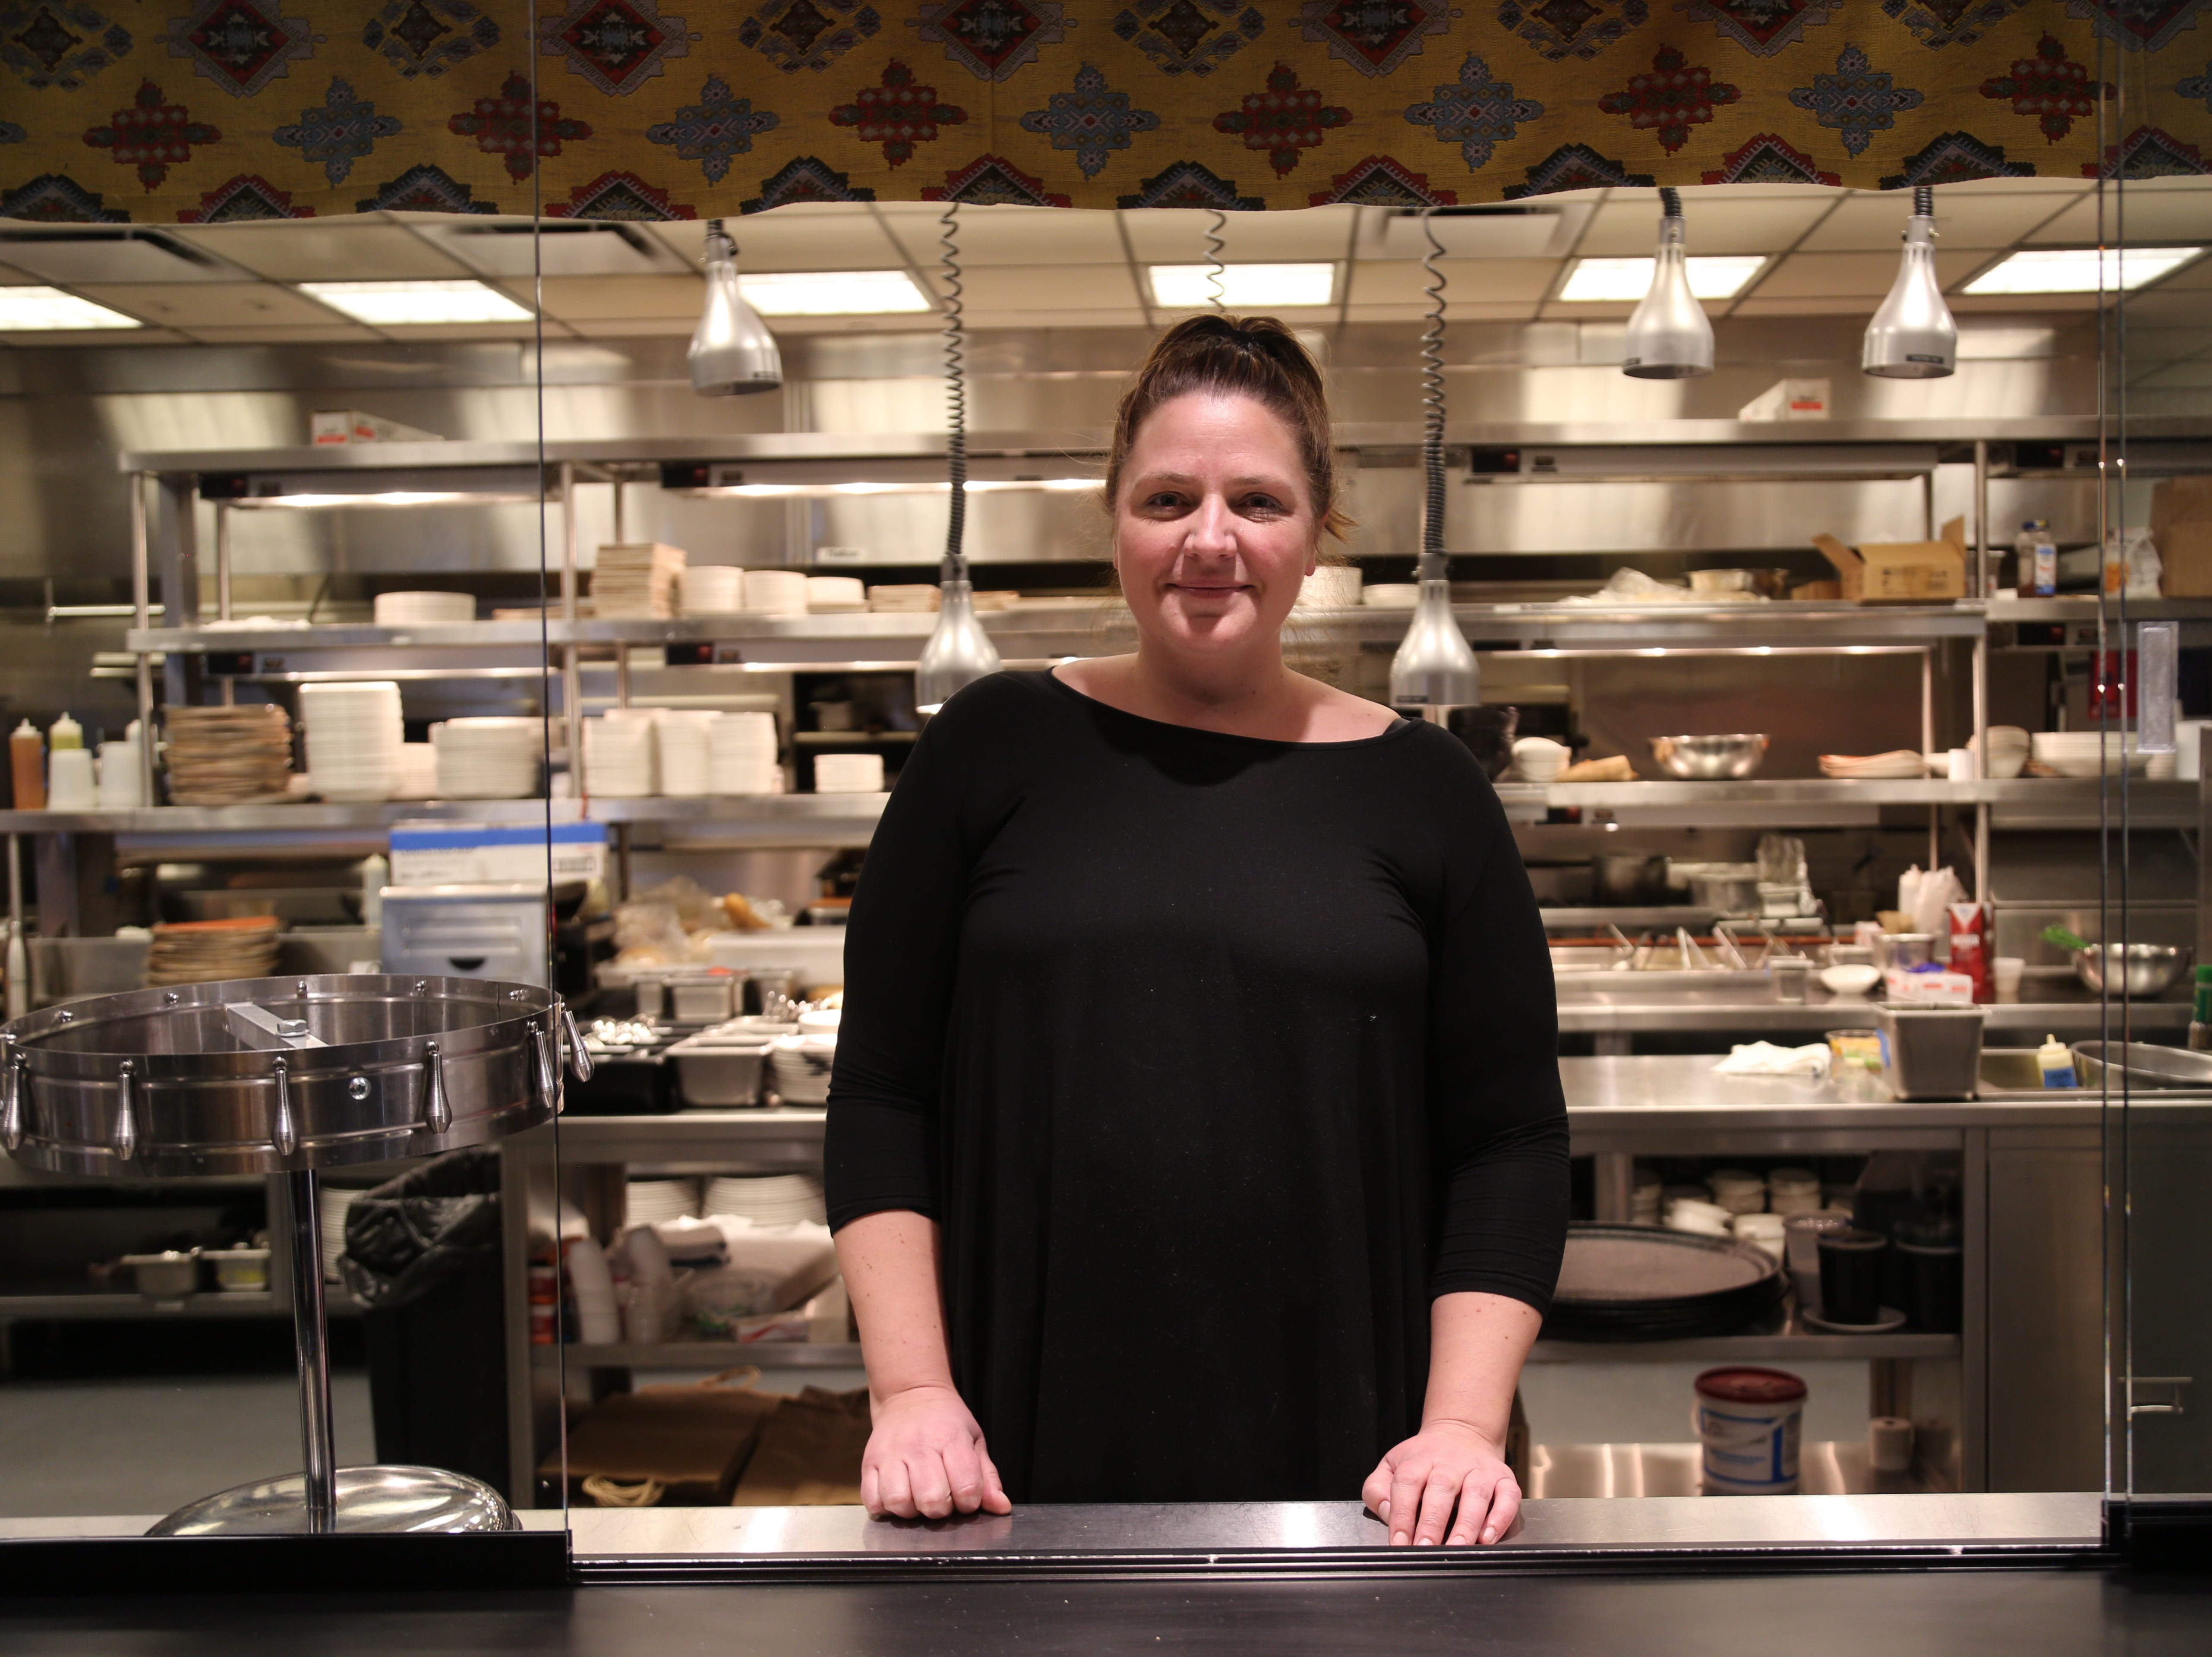 Emmele Herrold is the executive chef at Hazel, Ravines & Downtown in Birmingham.